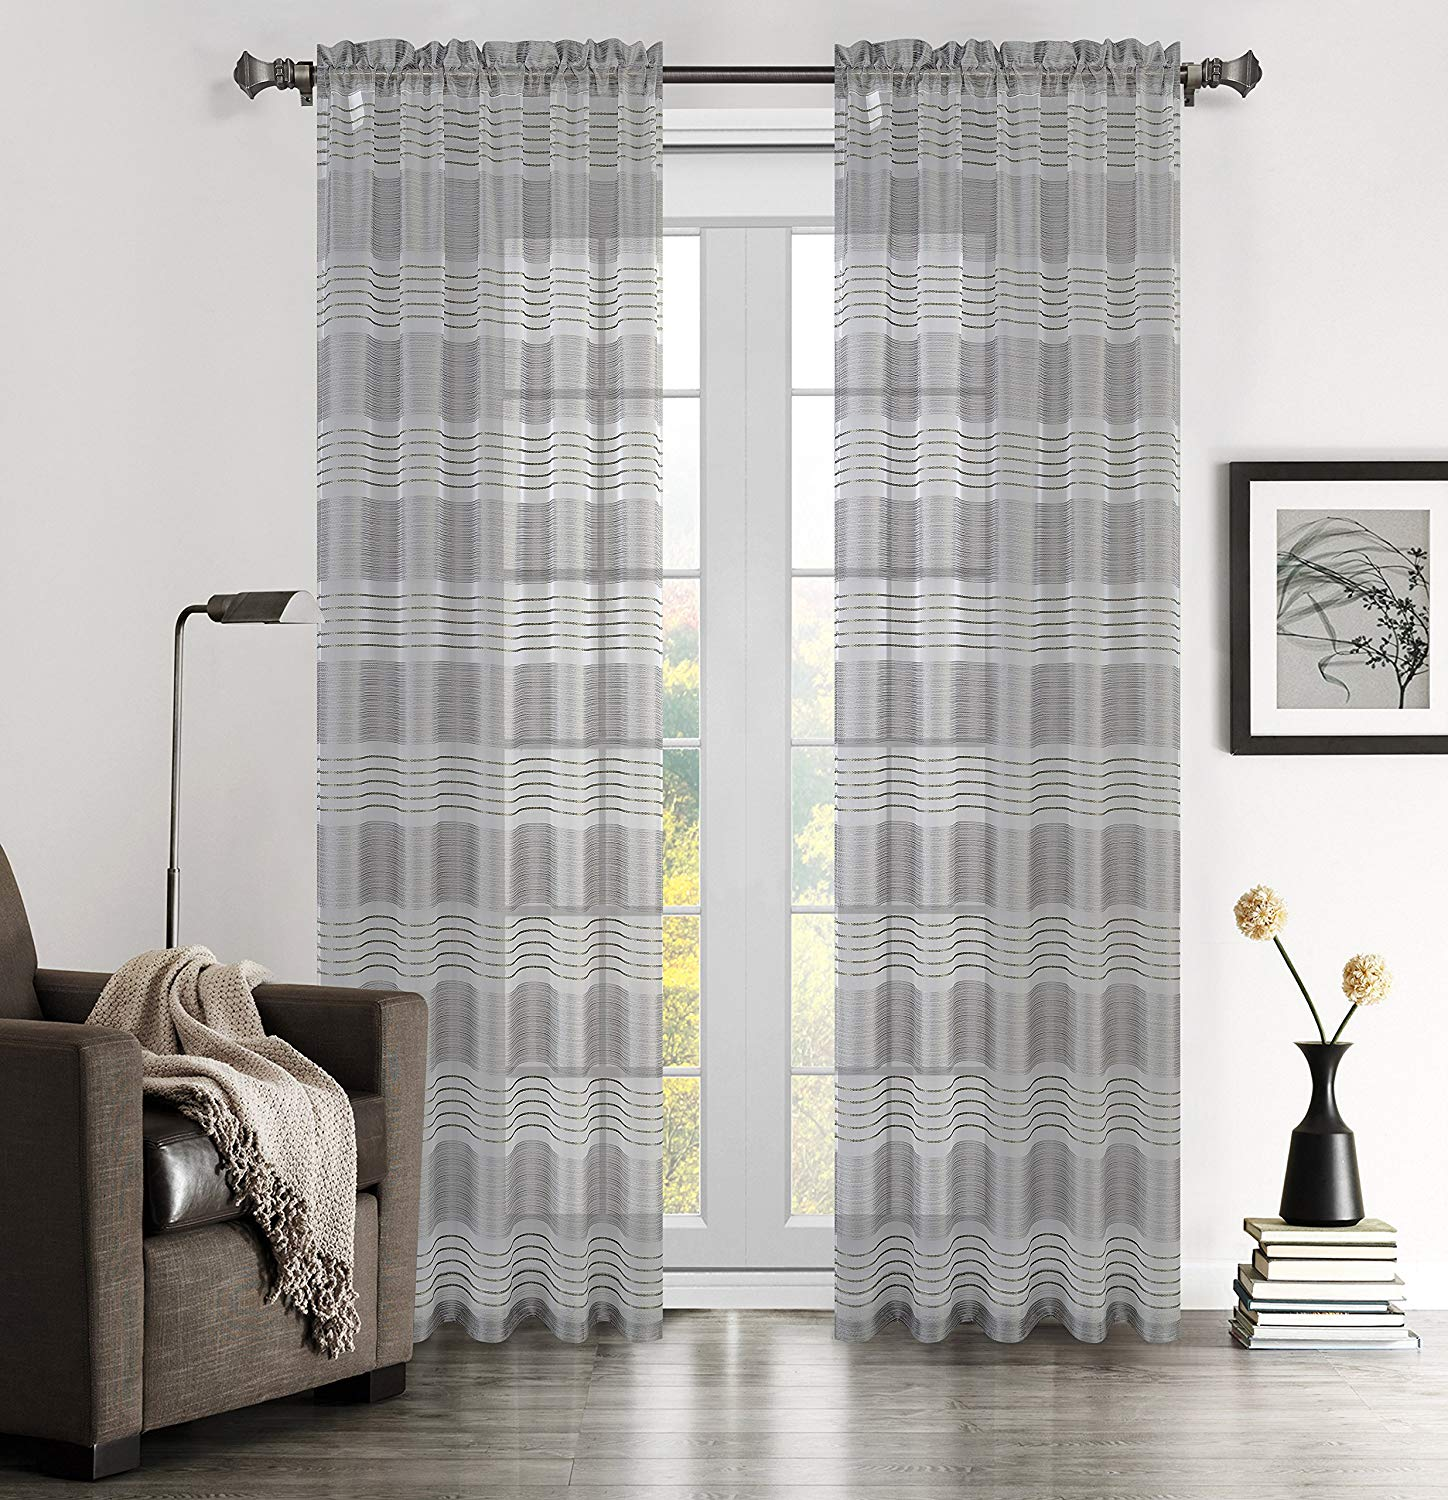 Sahara Set of 2 Linen Sheer Curtain Drapery Panels